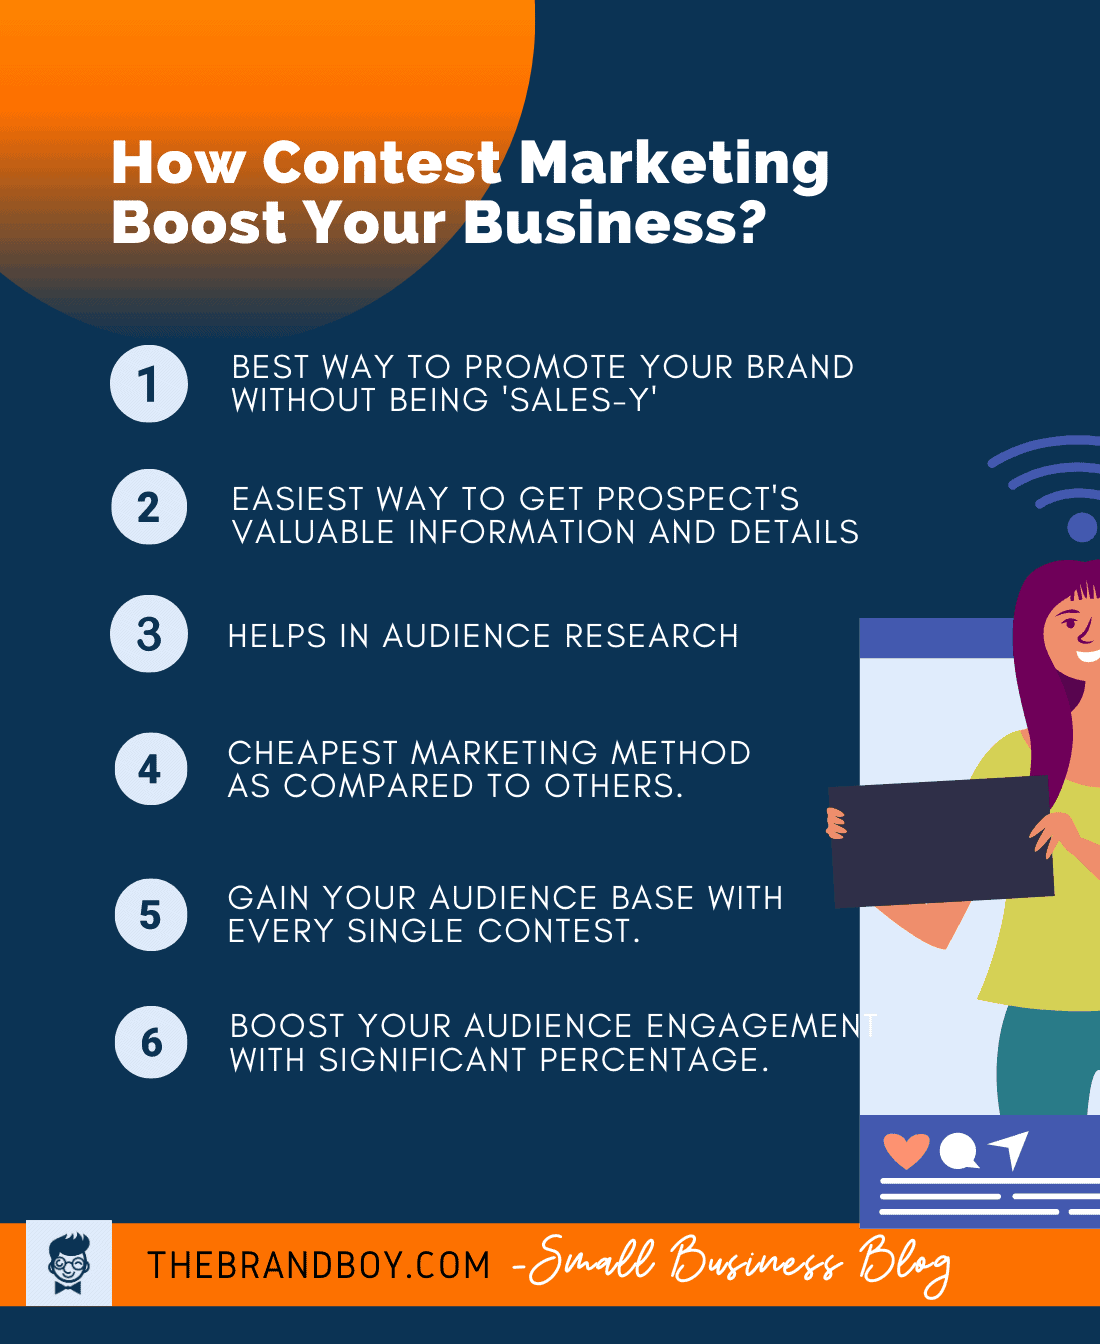 how contest marketing boost business